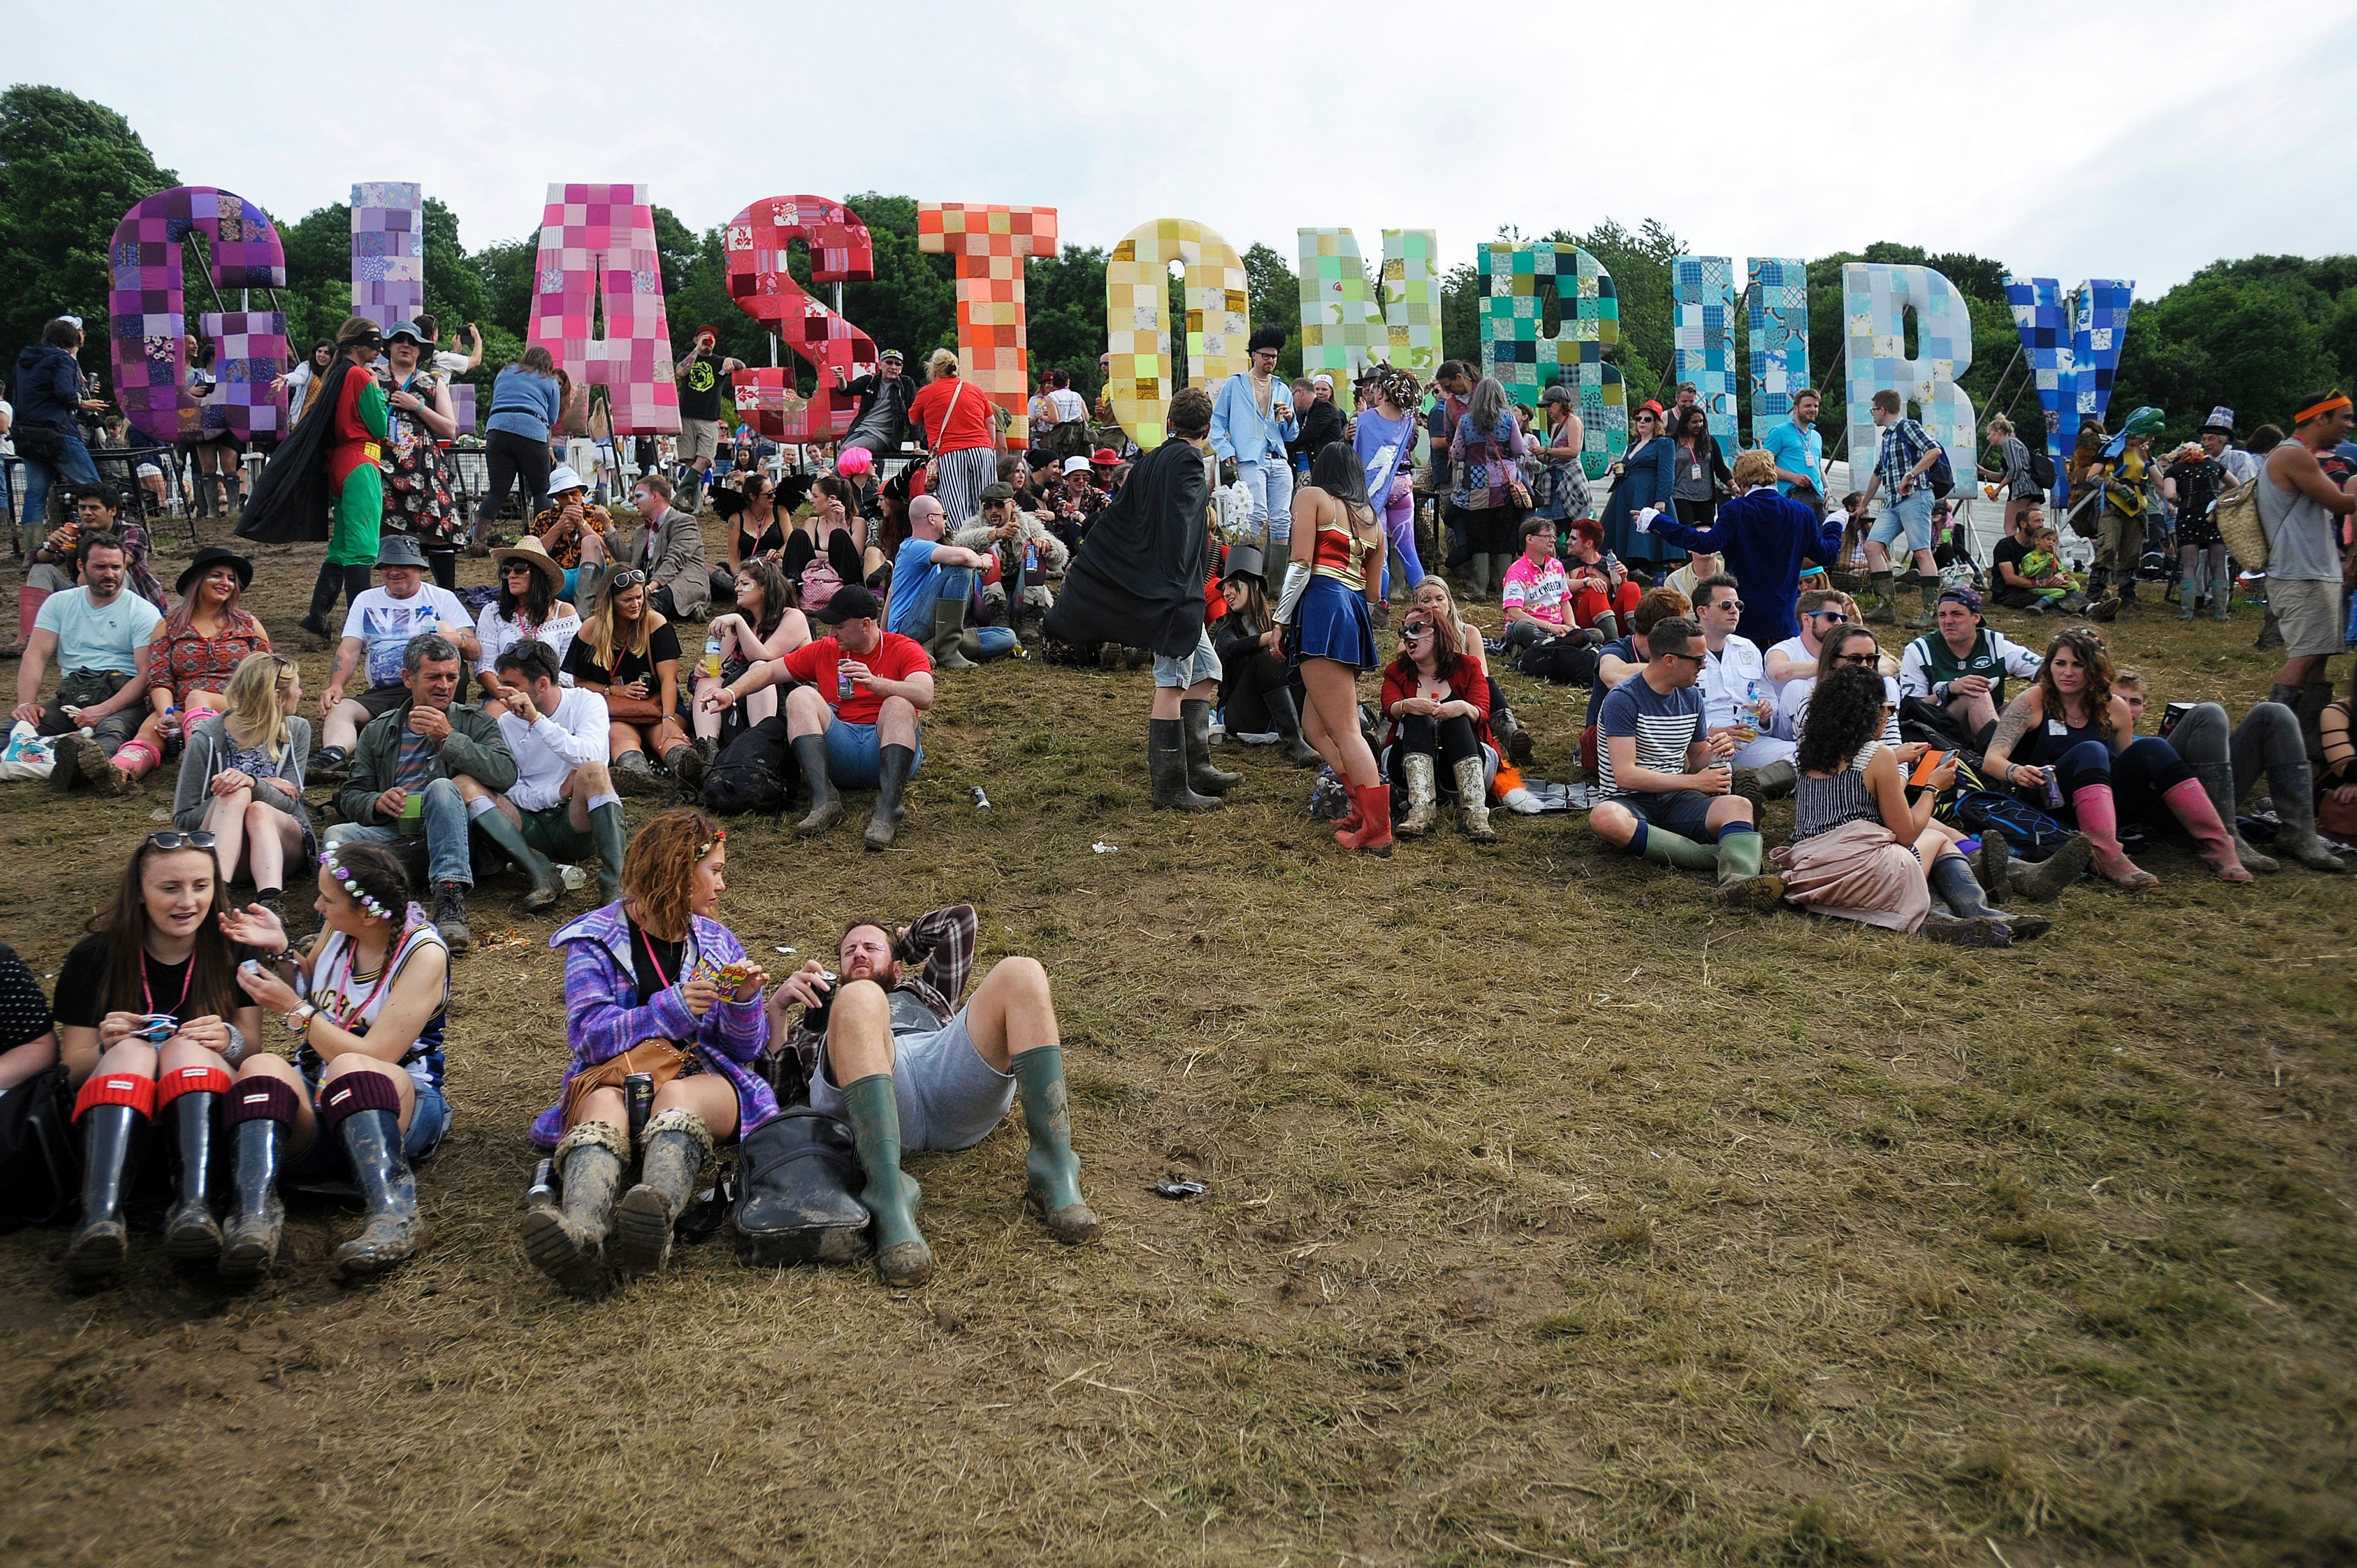 Glastonbury Is The UK's 'Most Promiscuous' Festival, With More People Having Sex Than At Any